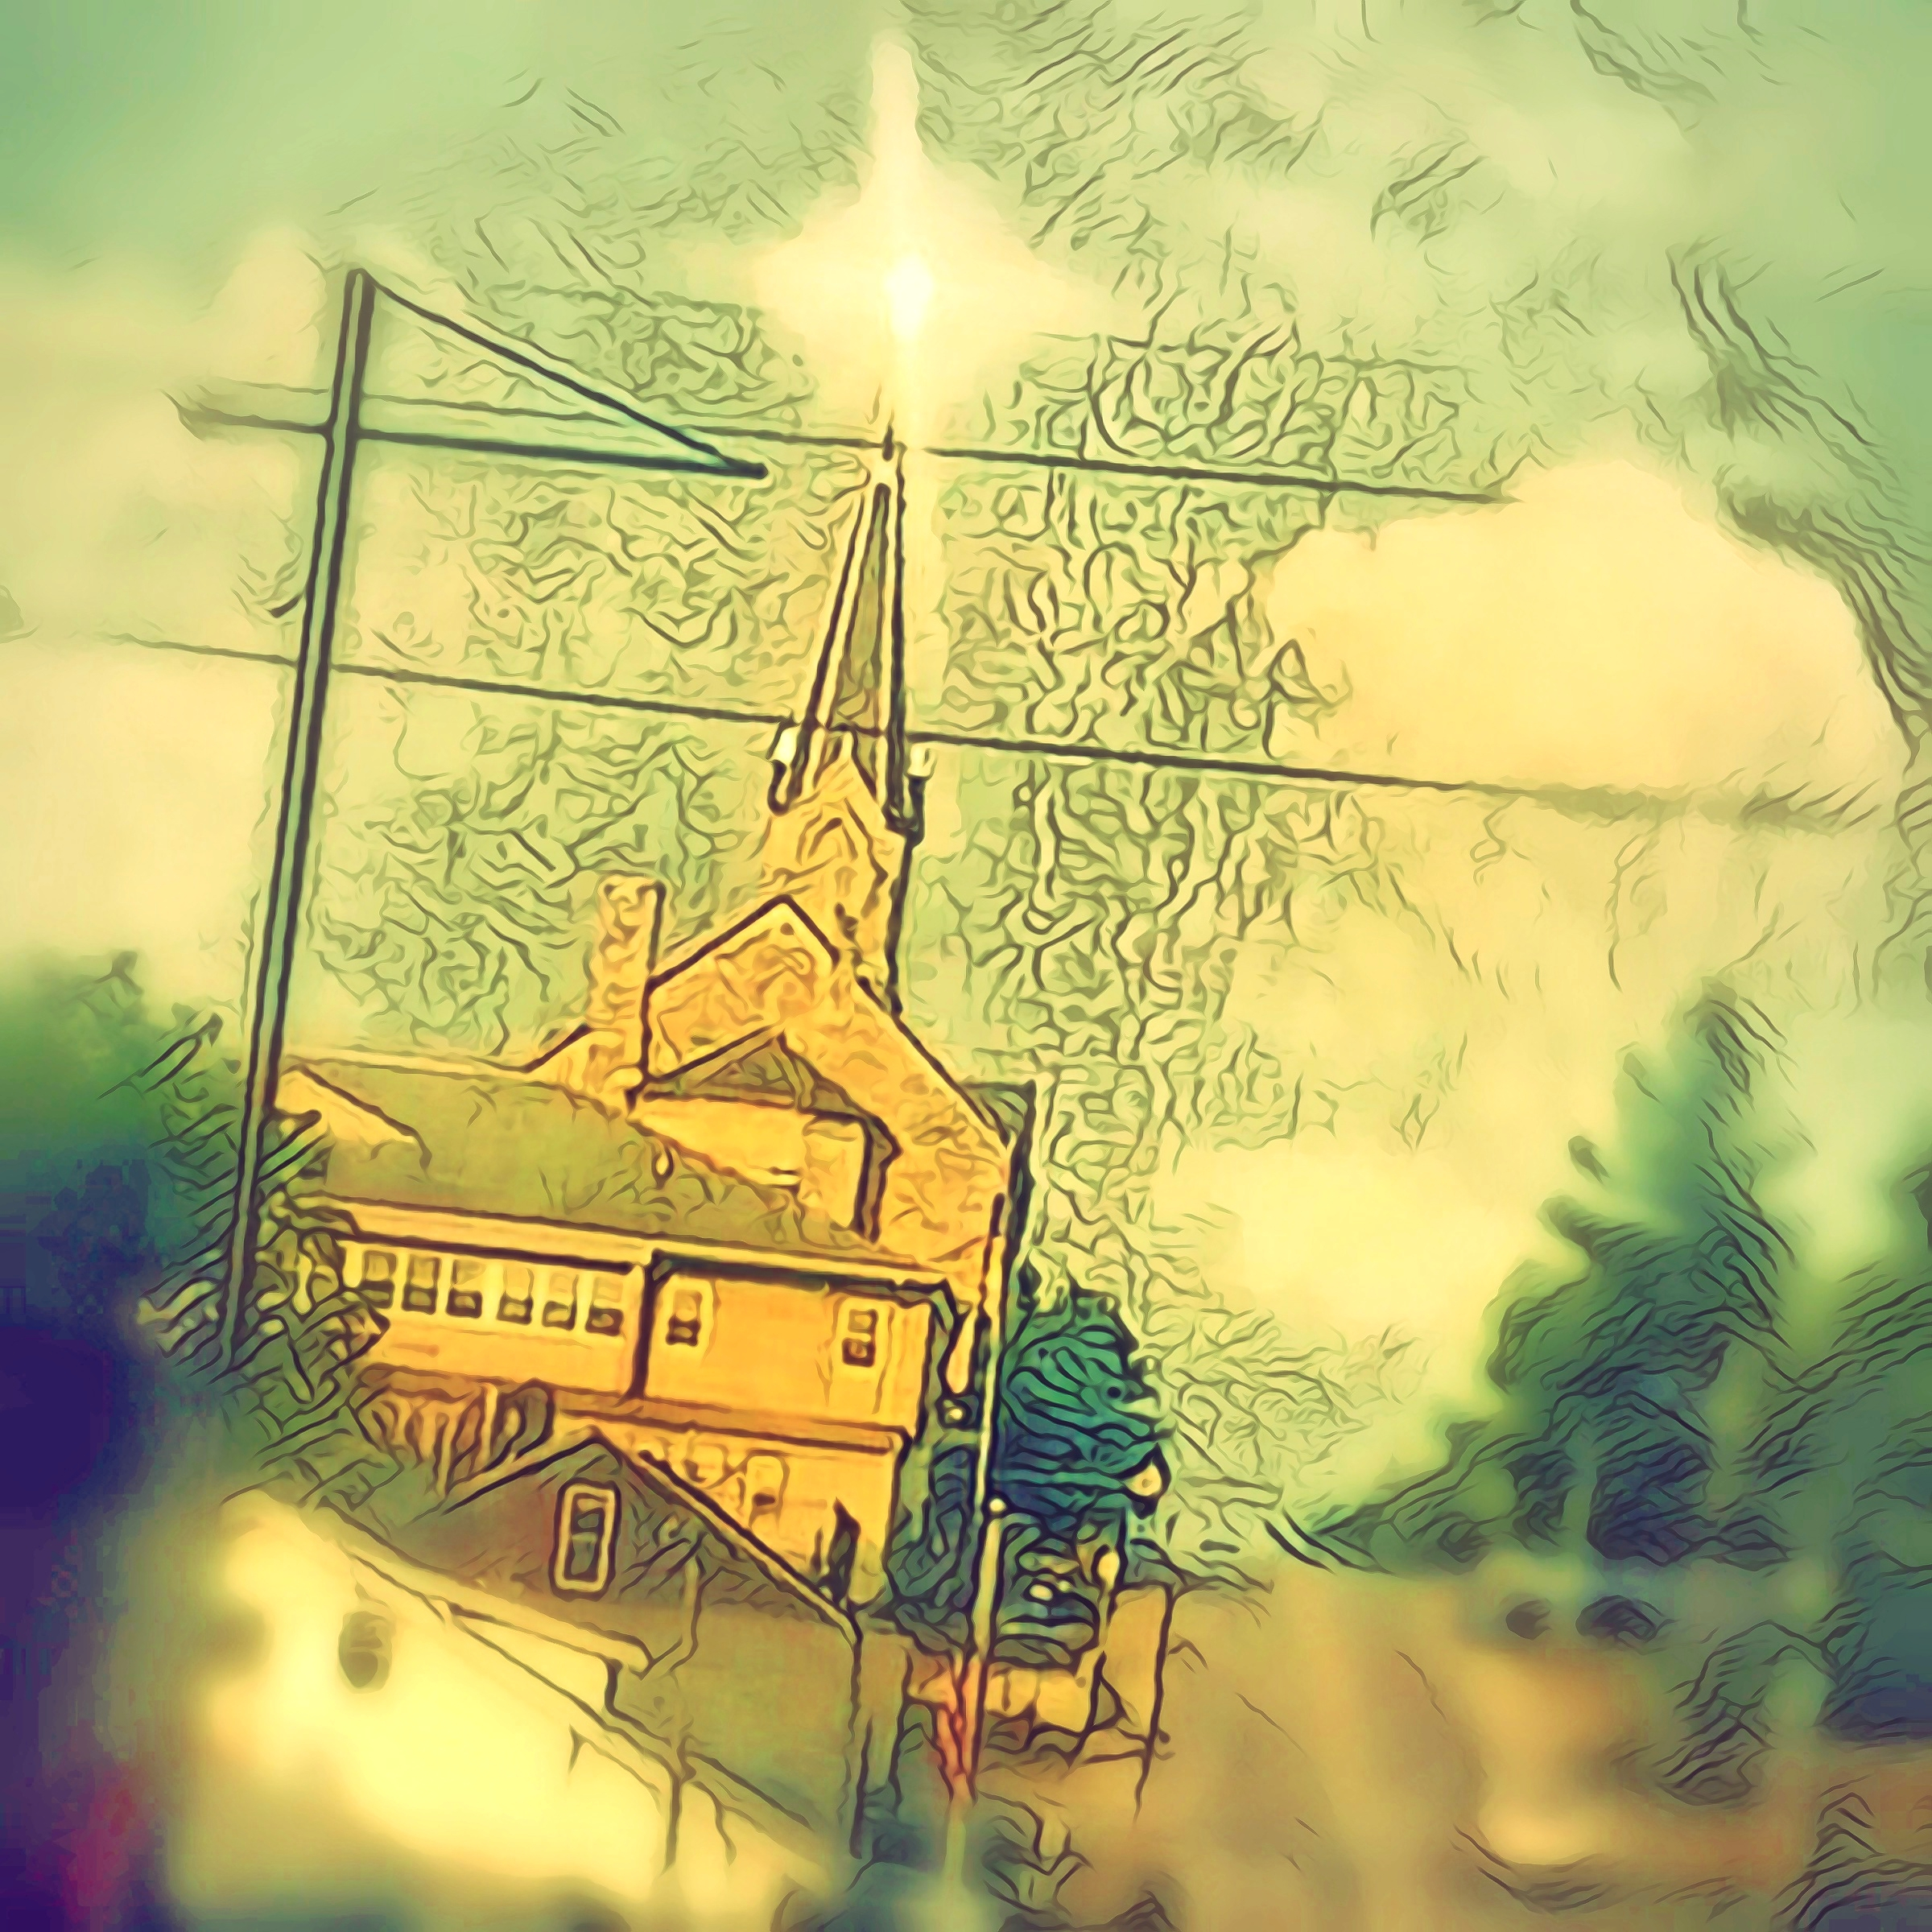 """St. Vincent's,"" Bedford, Indiana. Original digital Illustration of St. Vincent's church spire, illuminated by sunrise."""